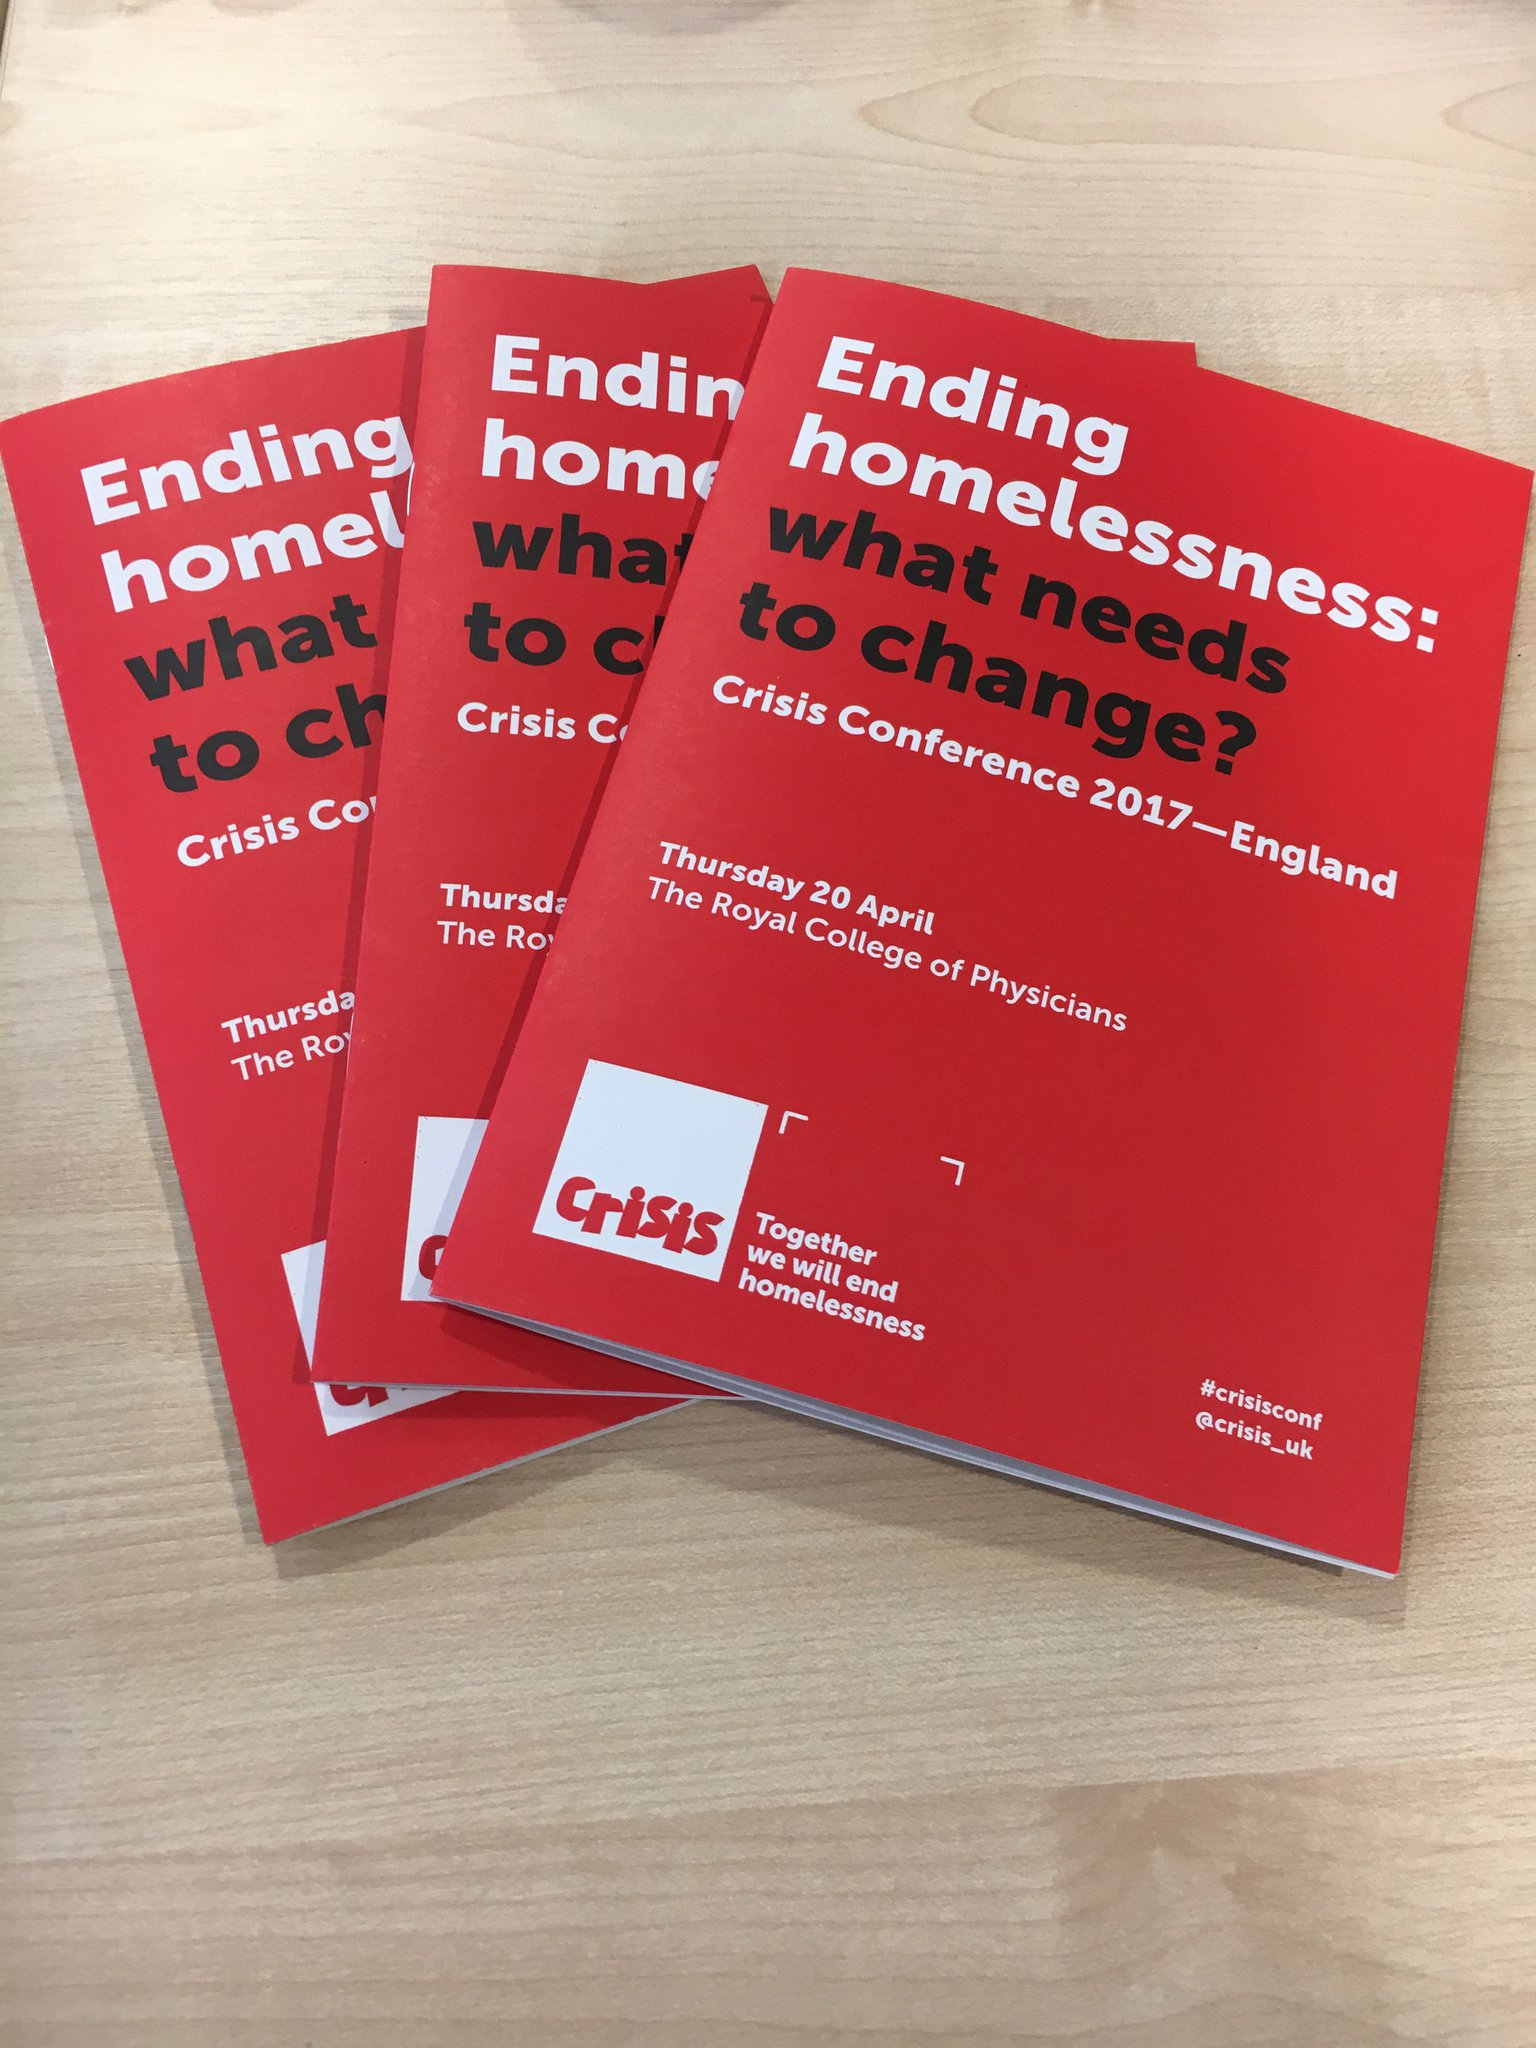 What will it take to end homelessness? Our conference  poses this question to a host of experts & sector leaders. Stay tuned for updates https://t.co/f5uJEh2clg